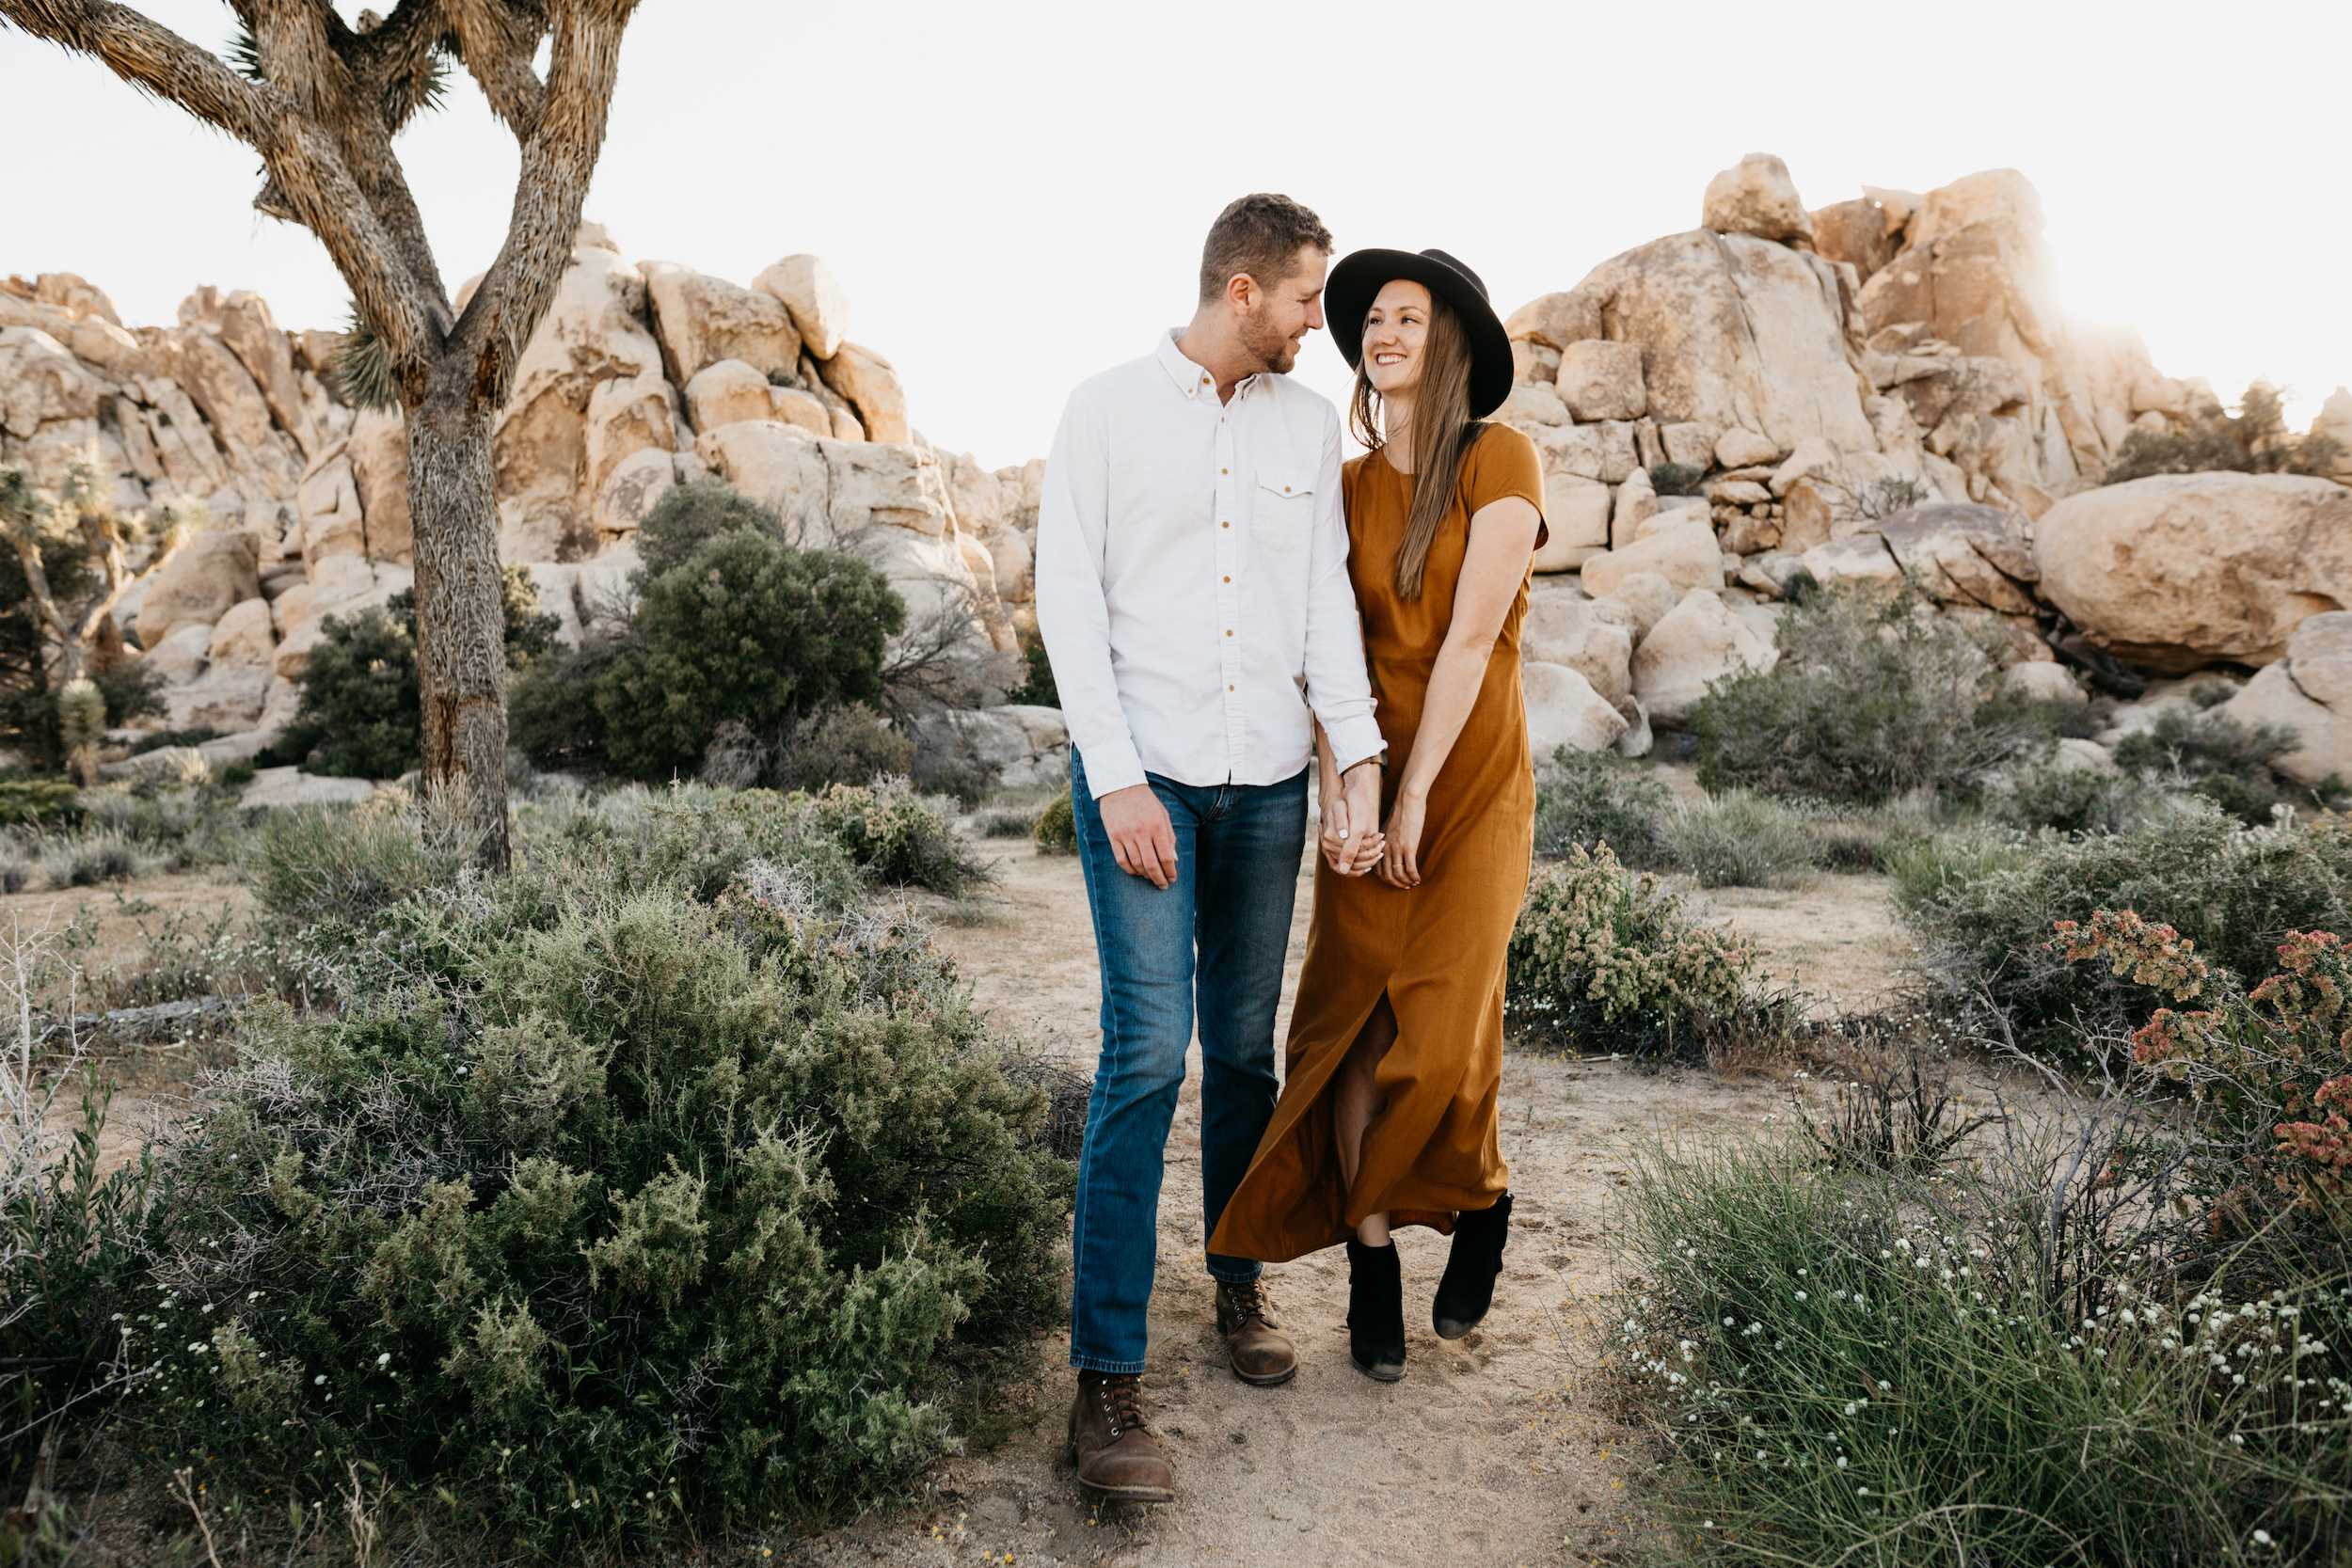 joshua - tree - wedding - photography 01219.jpg